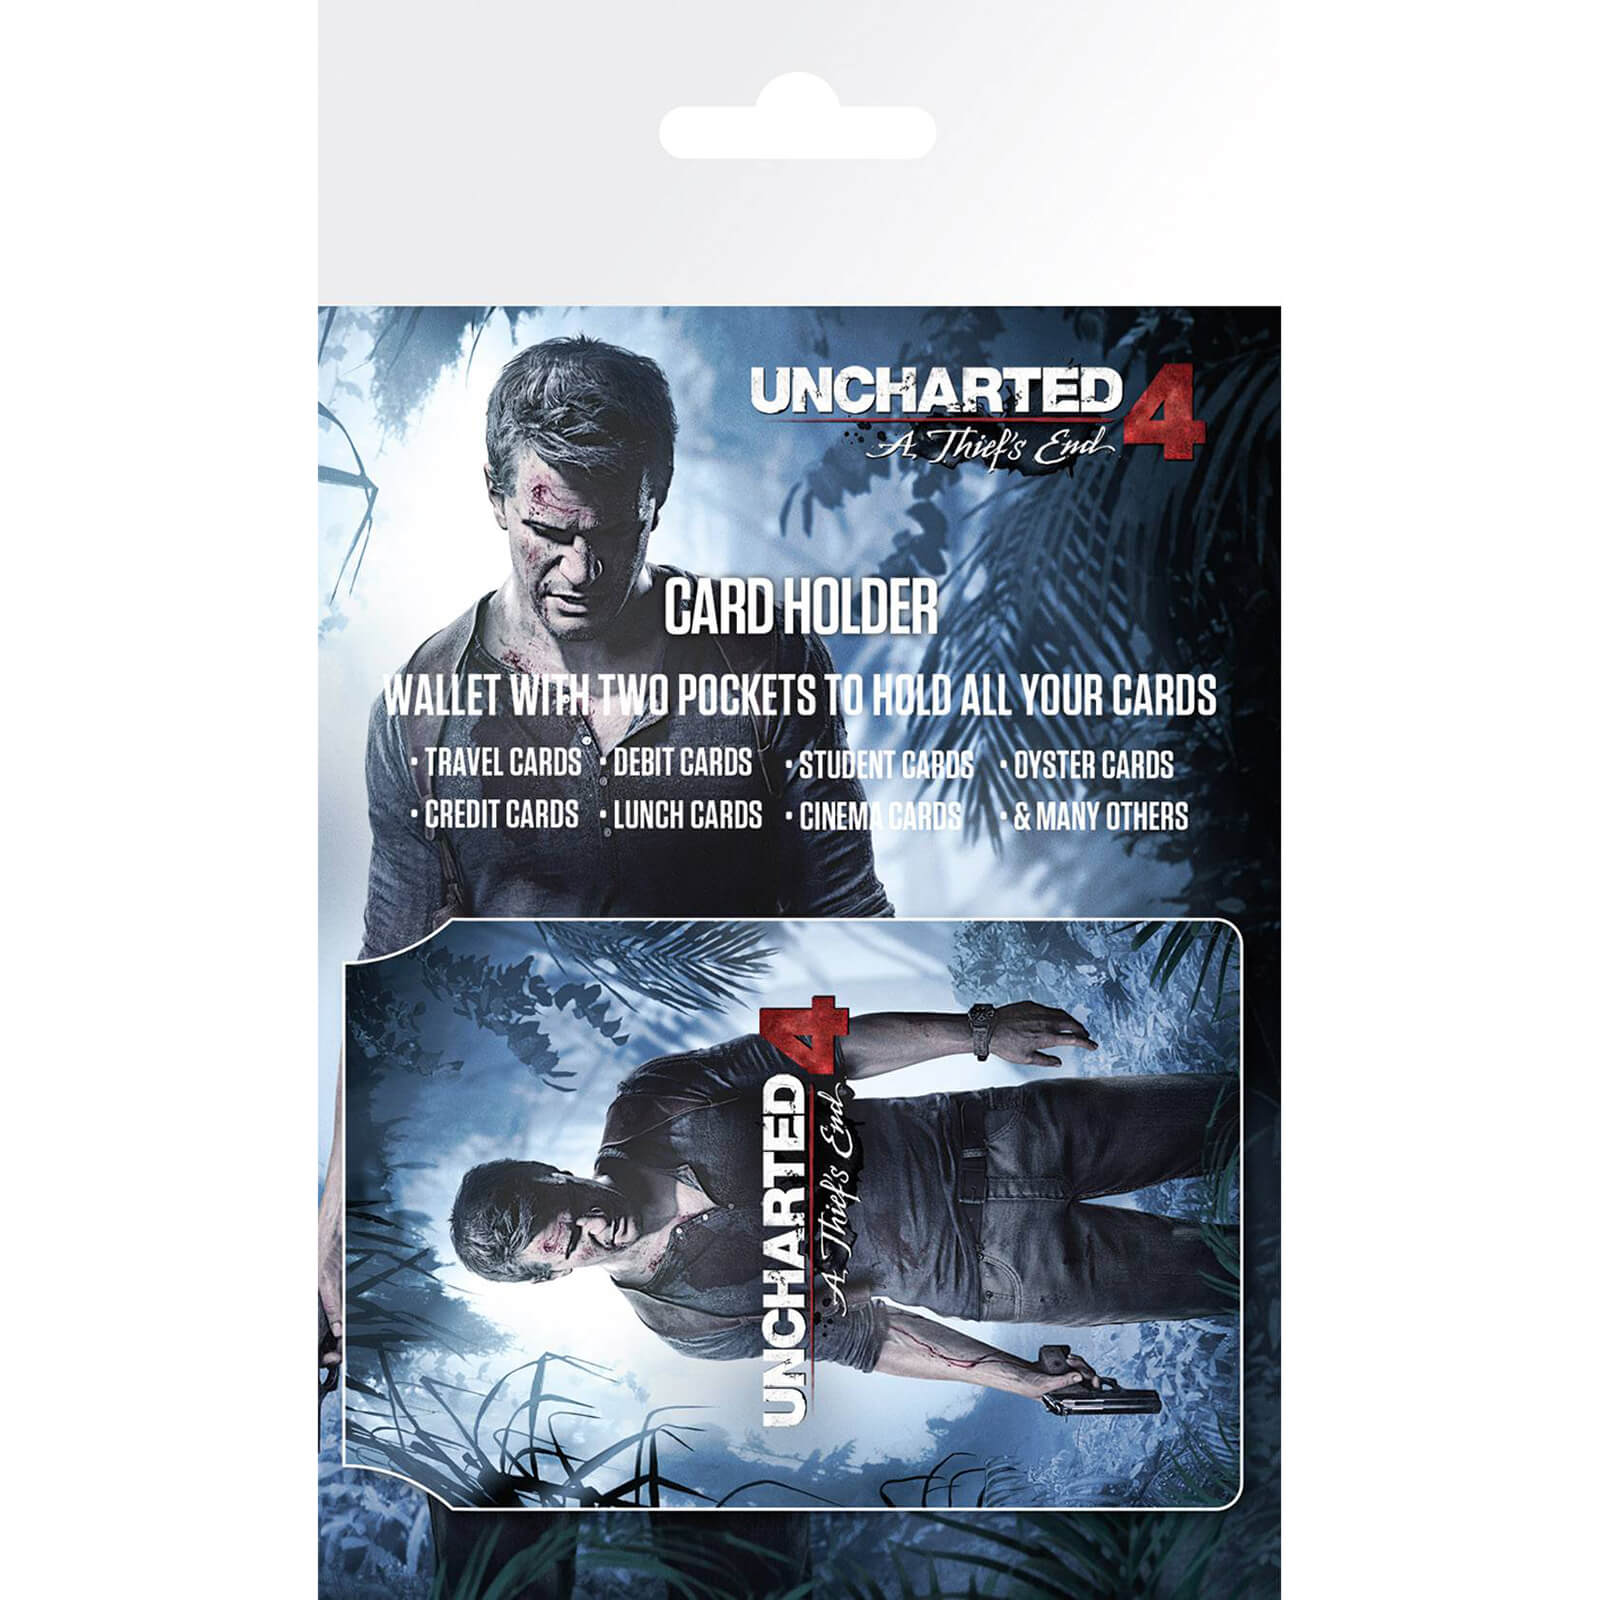 Uncharted 4 Keyart Card Holder